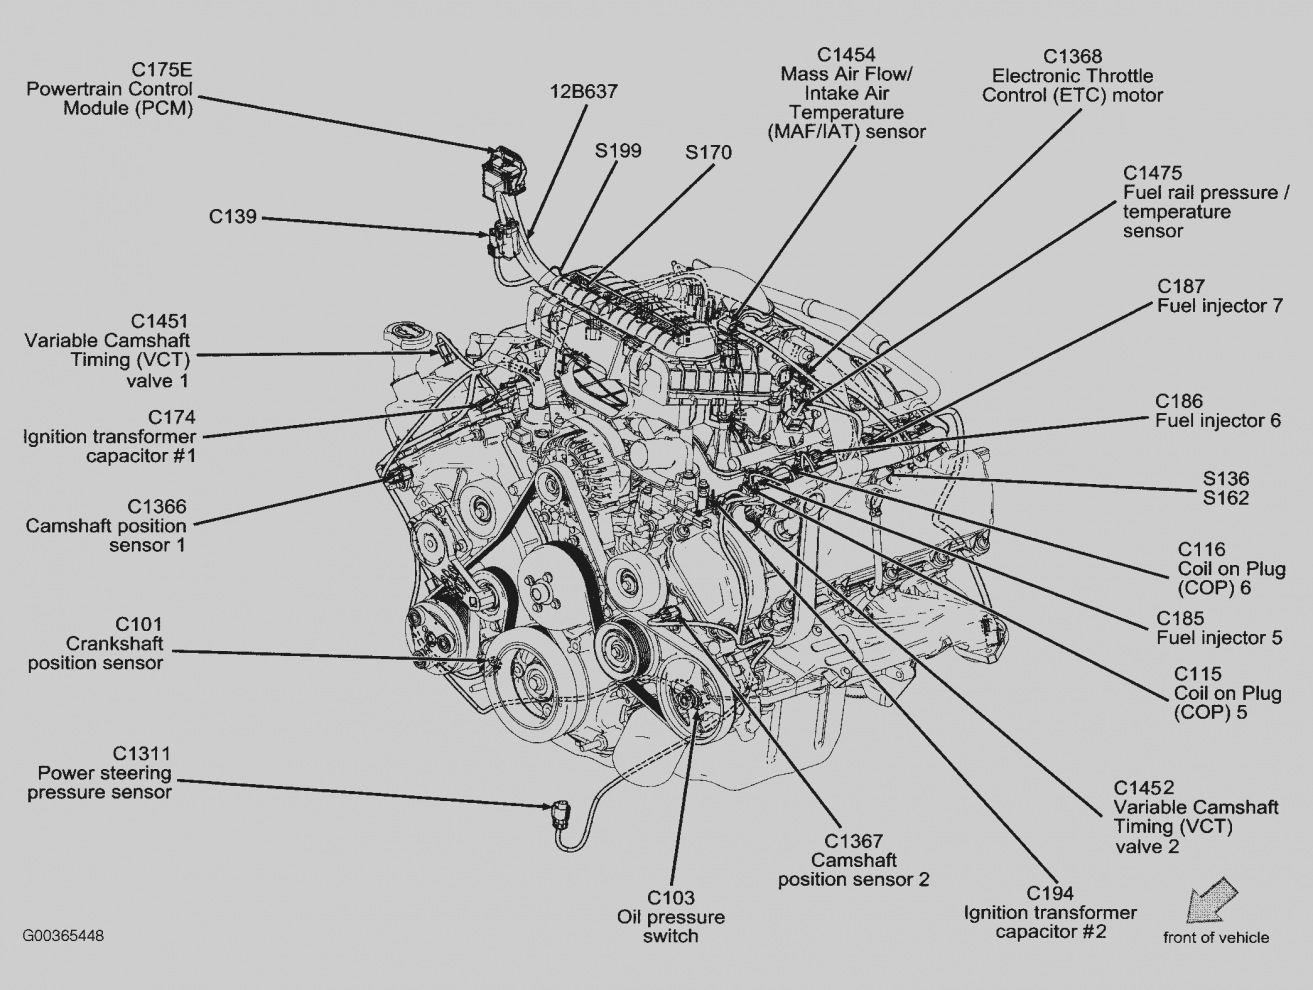 medium resolution of 2006 ford f 150 6 cylinder engine diagram wiring diagram list 2006 ford f 150 6 cylinder engine diagram